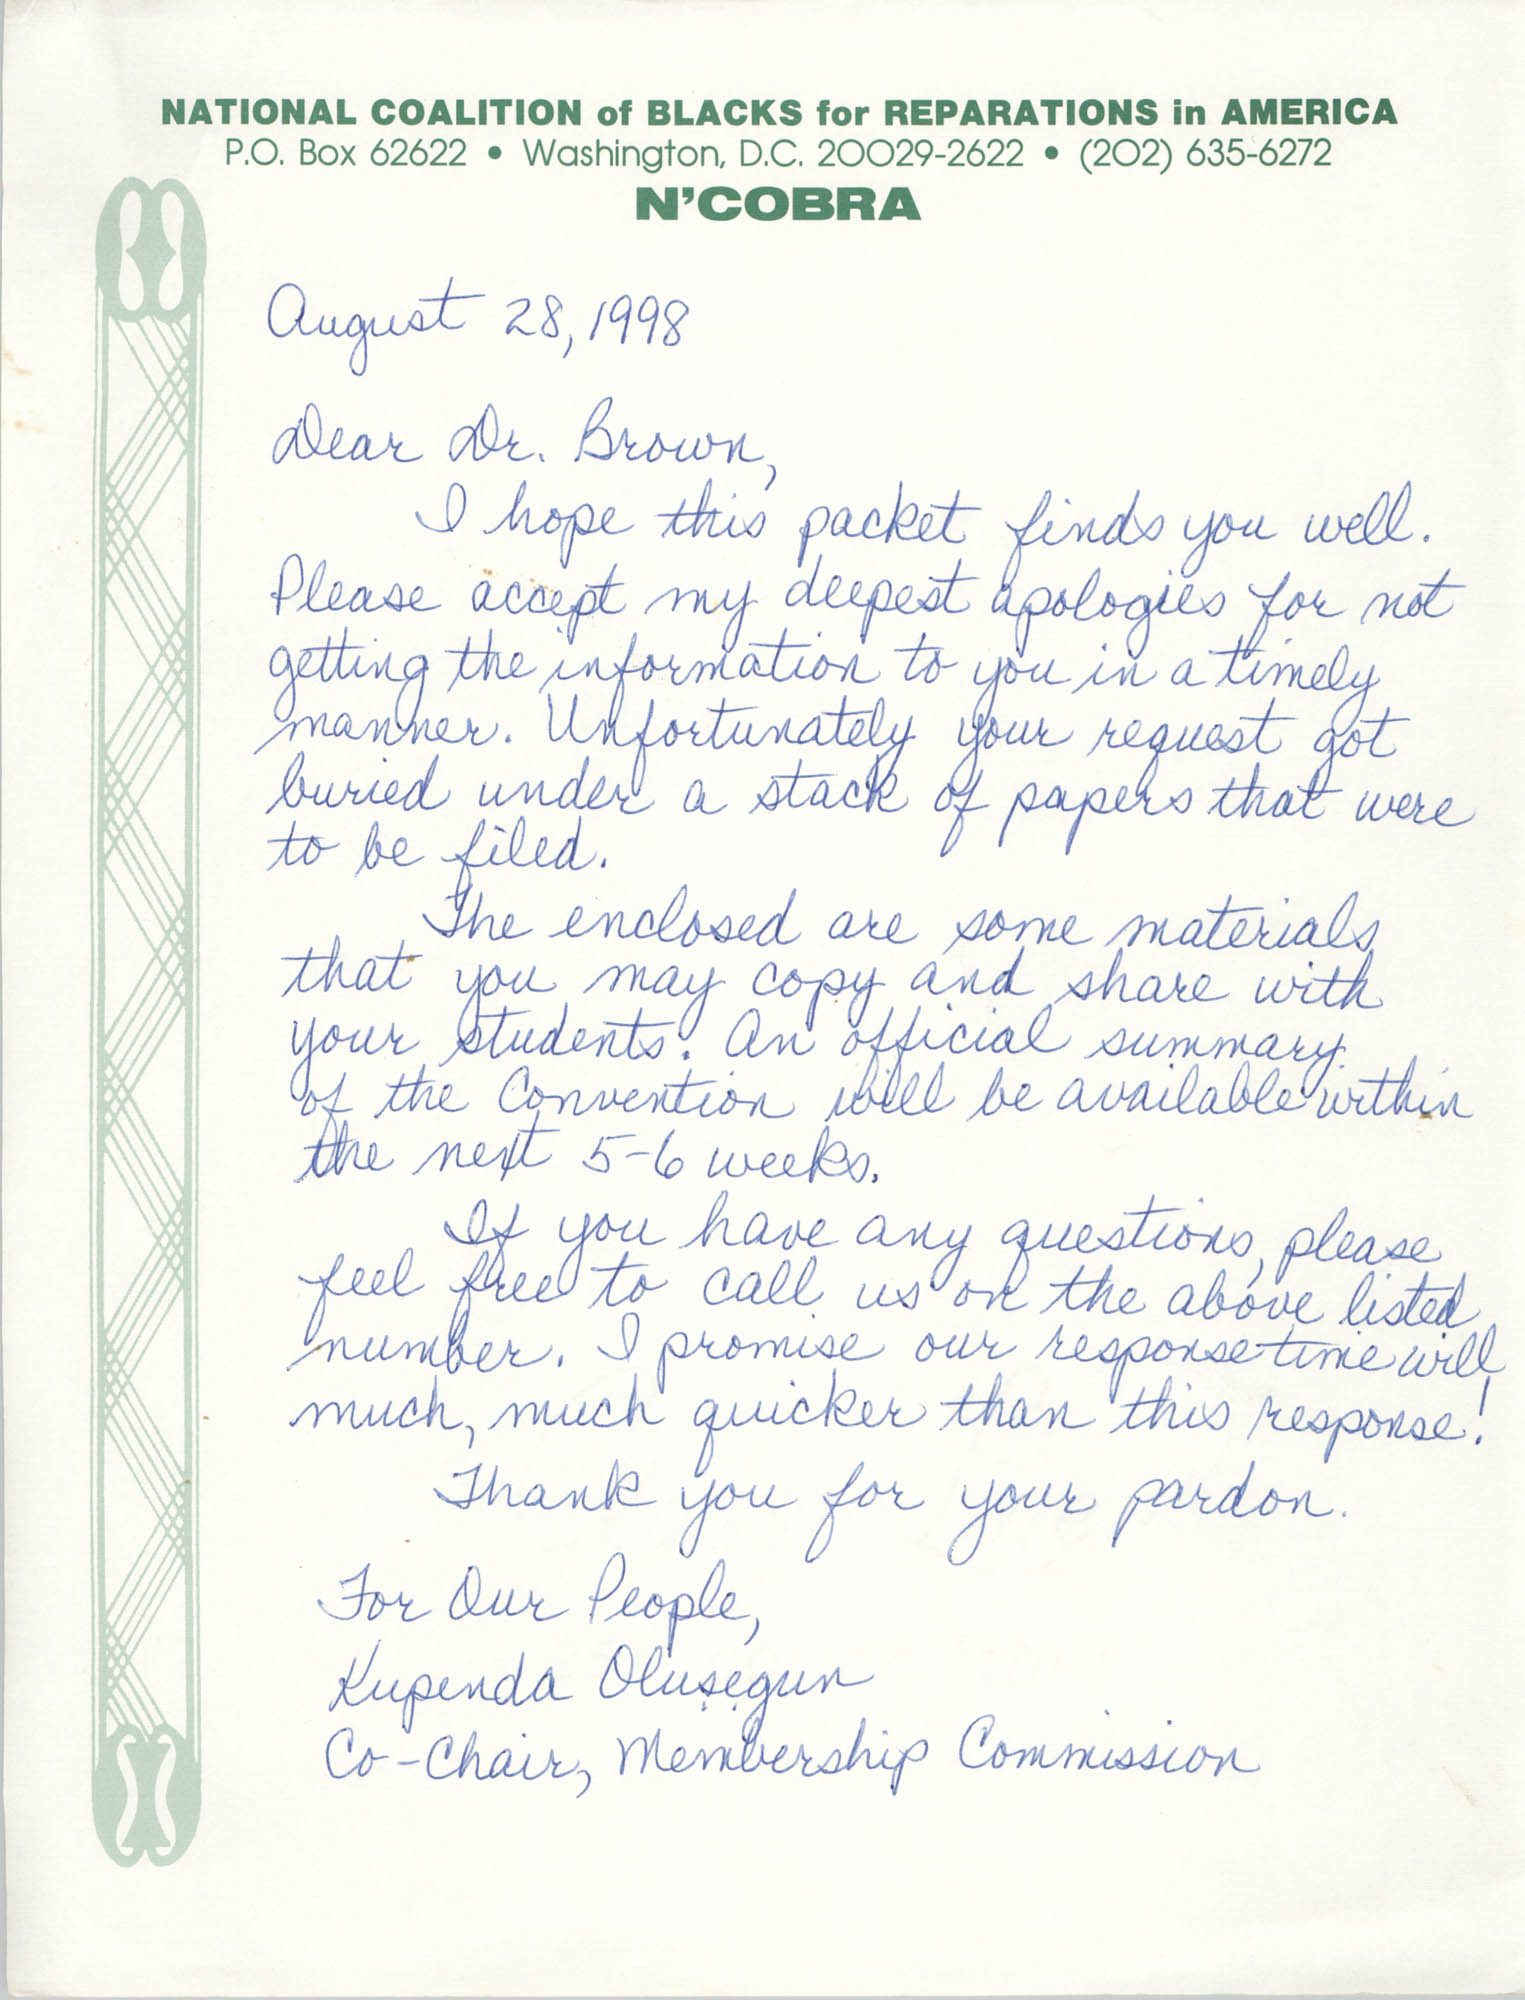 Letter from Kupenda Olusegun to Millicent Brown, August 28, 1998